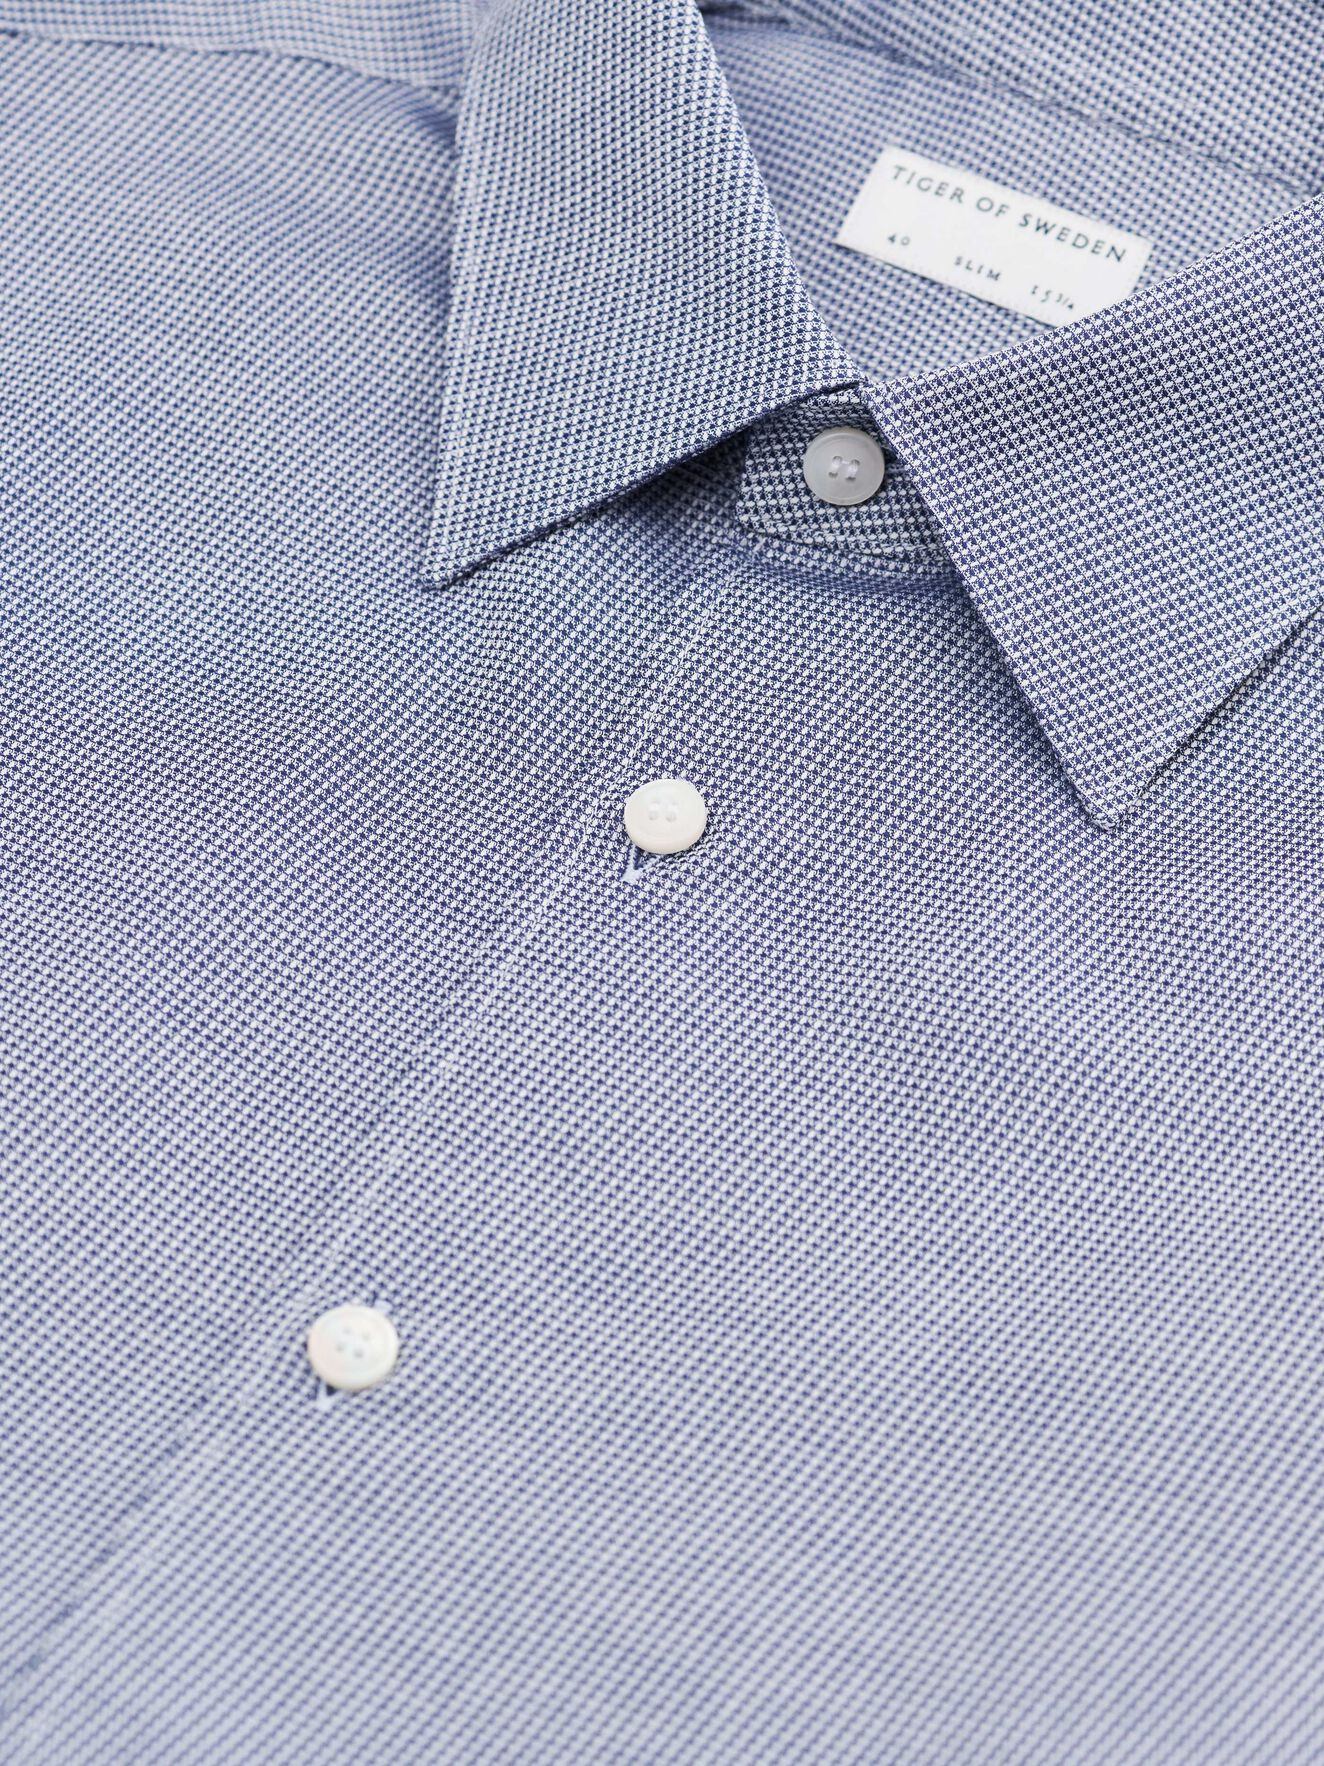 Farrell Shirt in Royal Blue from Tiger of Sweden